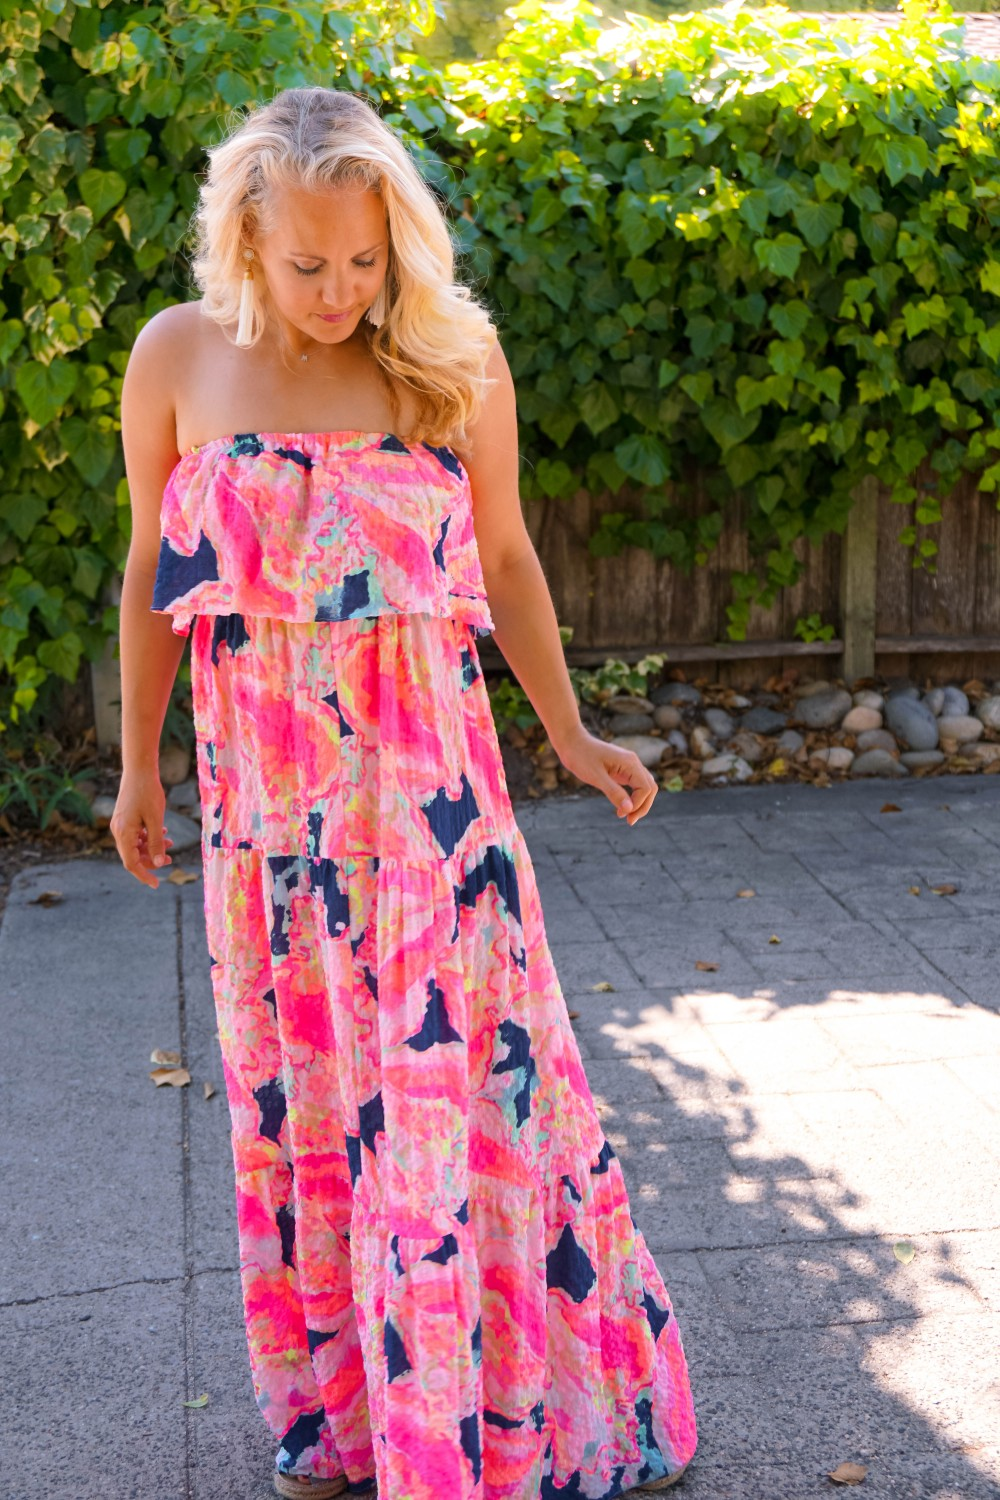 Lilly Pulitzer-Resort 365-Outfit Inspiration-Summer Style-Summer Maxi Dress-Summer 2017 Trends-Have Need Want 15